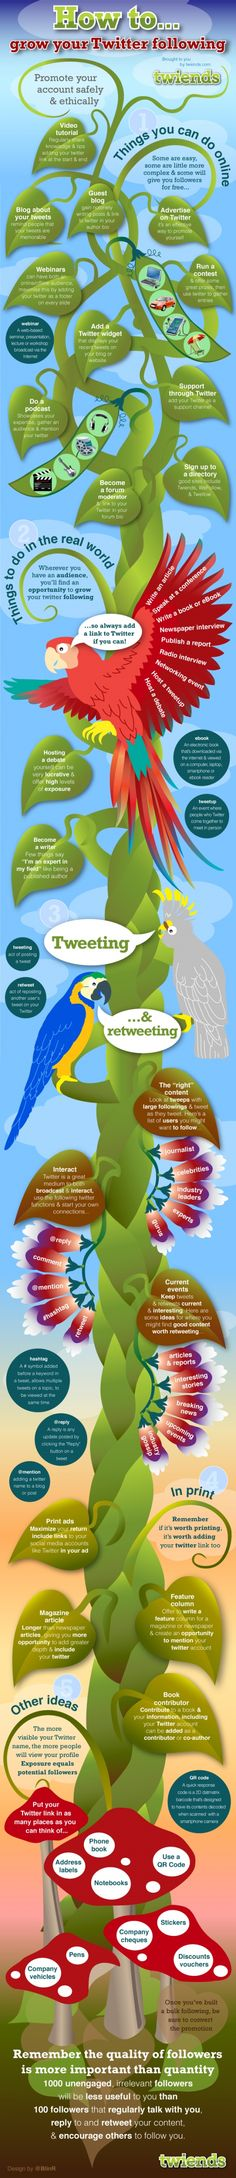 get more twitter followers #infographic www.socialmediamamma.com